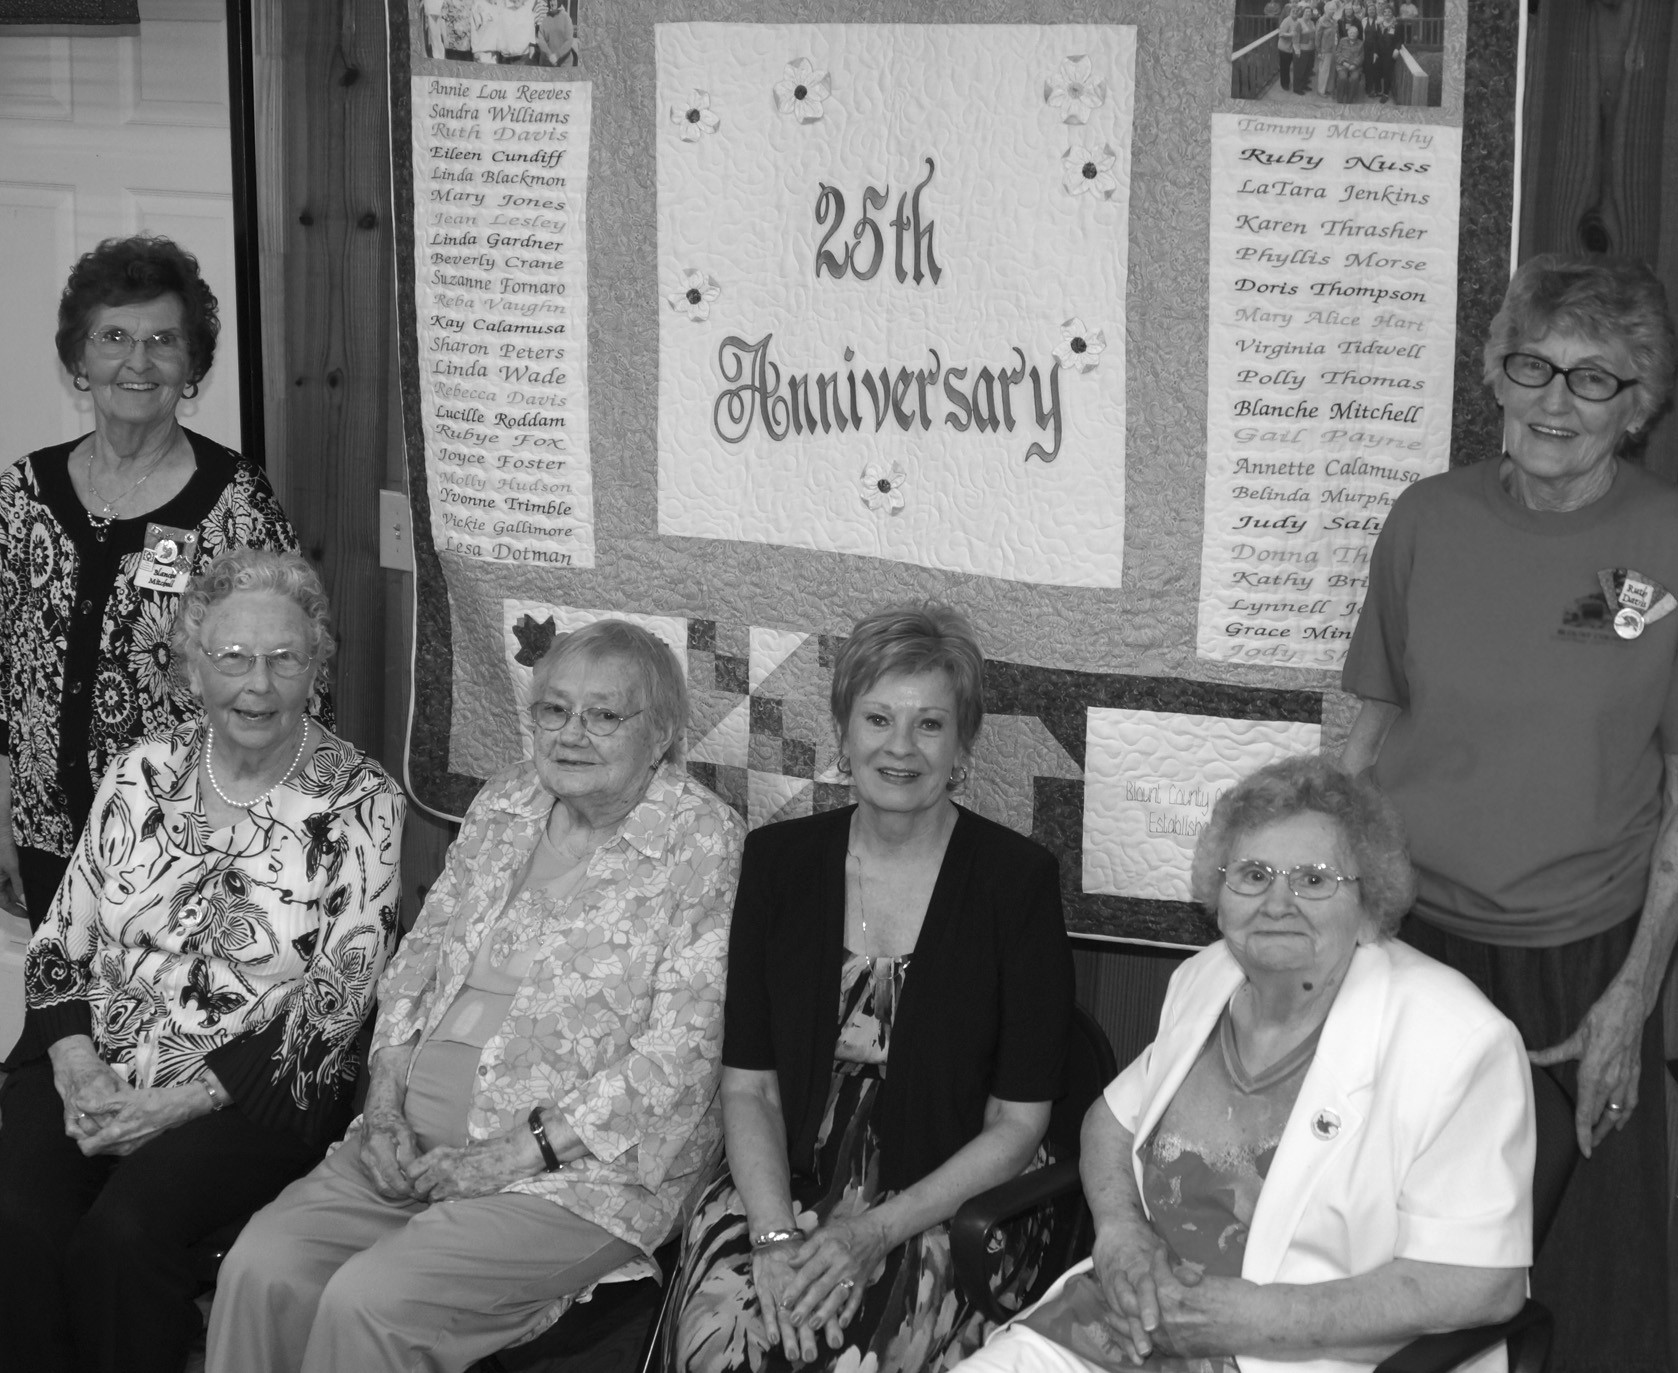 Sustaining members honored at the Blount County Quilters Guild June 4 anniversary celebration are (from the left) Blanche Mitchell (standing),Virginia Tidwell, Lucille Roddam, Carol Reid, and Annie Lou Reeves (standing). JoAnne Pruett was not present for the photo. The quilt shown was quilted by Guild members and dedicated to the seven sustaining members. They were also given quilted tote bags handmade by Guild members. Sustaining members are long-term members who have been affiliated with the Guild since its beginning or since its earliest years. The quilt features names of all currrent Guild members and seven quilt blocks sewn by or for the honorees. It was designed, pieced, and quilted by Guild members. Those interested in quilting are invited to visit the Guild which meets on Tuesdays and Thursdays, 10 a.m. to 2 p.m., and on the second and fourth Saturdays at the same time at the Quilters Cottage in Palisades Park. For further information about the Quilters Guild and its activities, call Phyllis Morse at 205-994-4749. – Ron Gholson